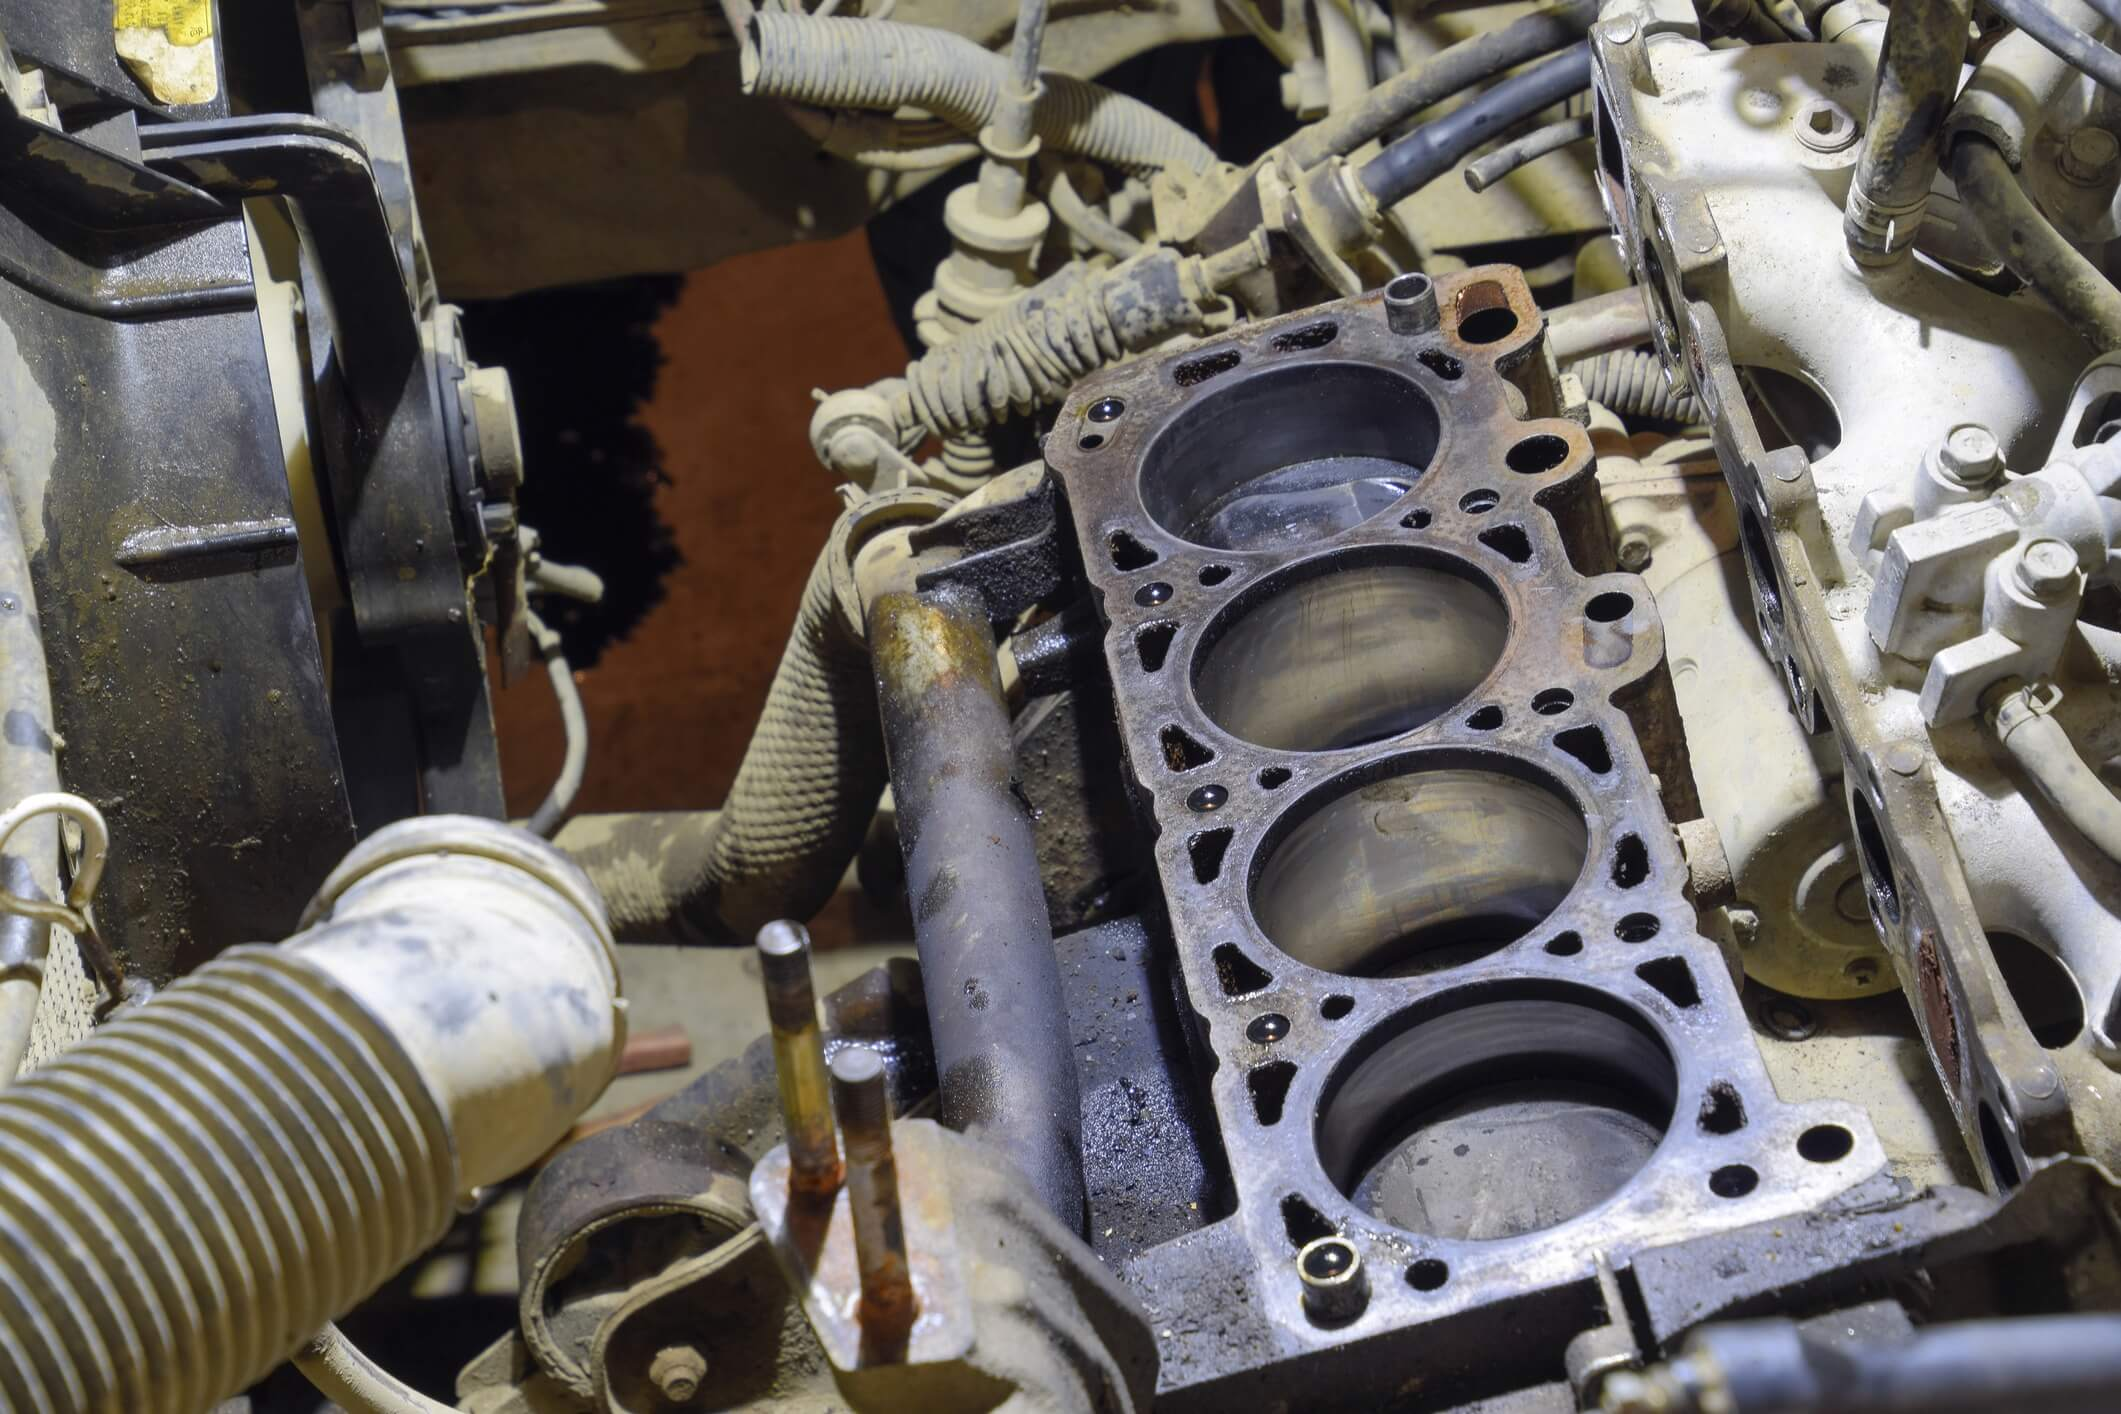 A blown head gasket